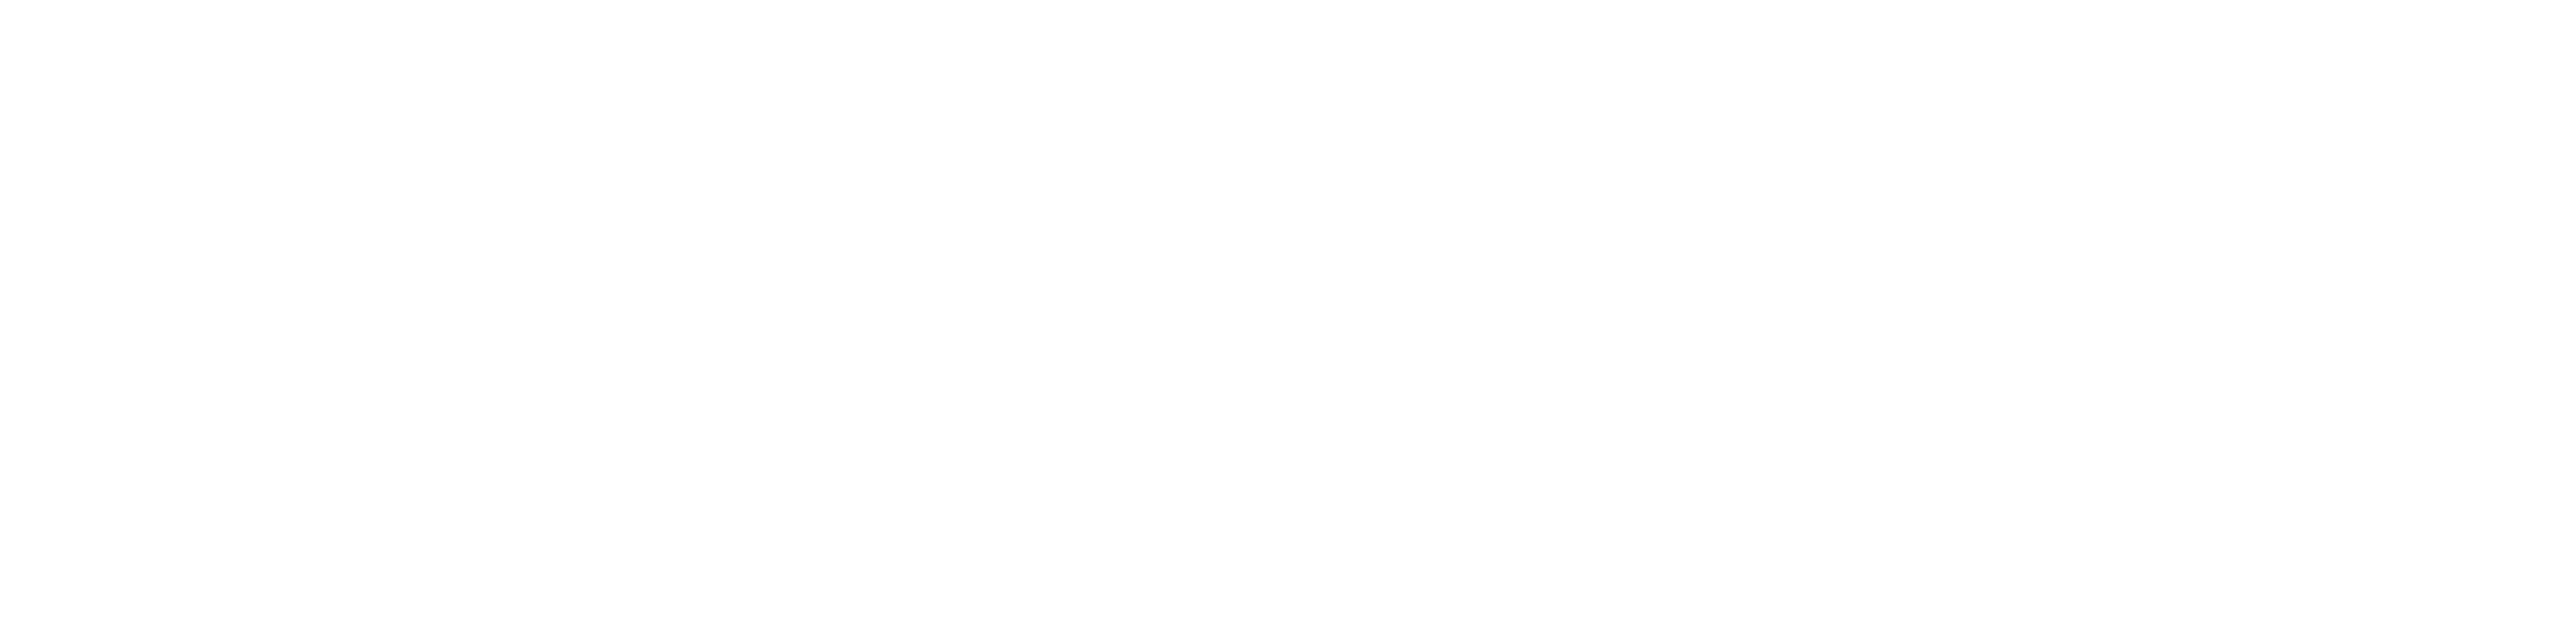 TV-Refrath-Badminton-Logo-negativ